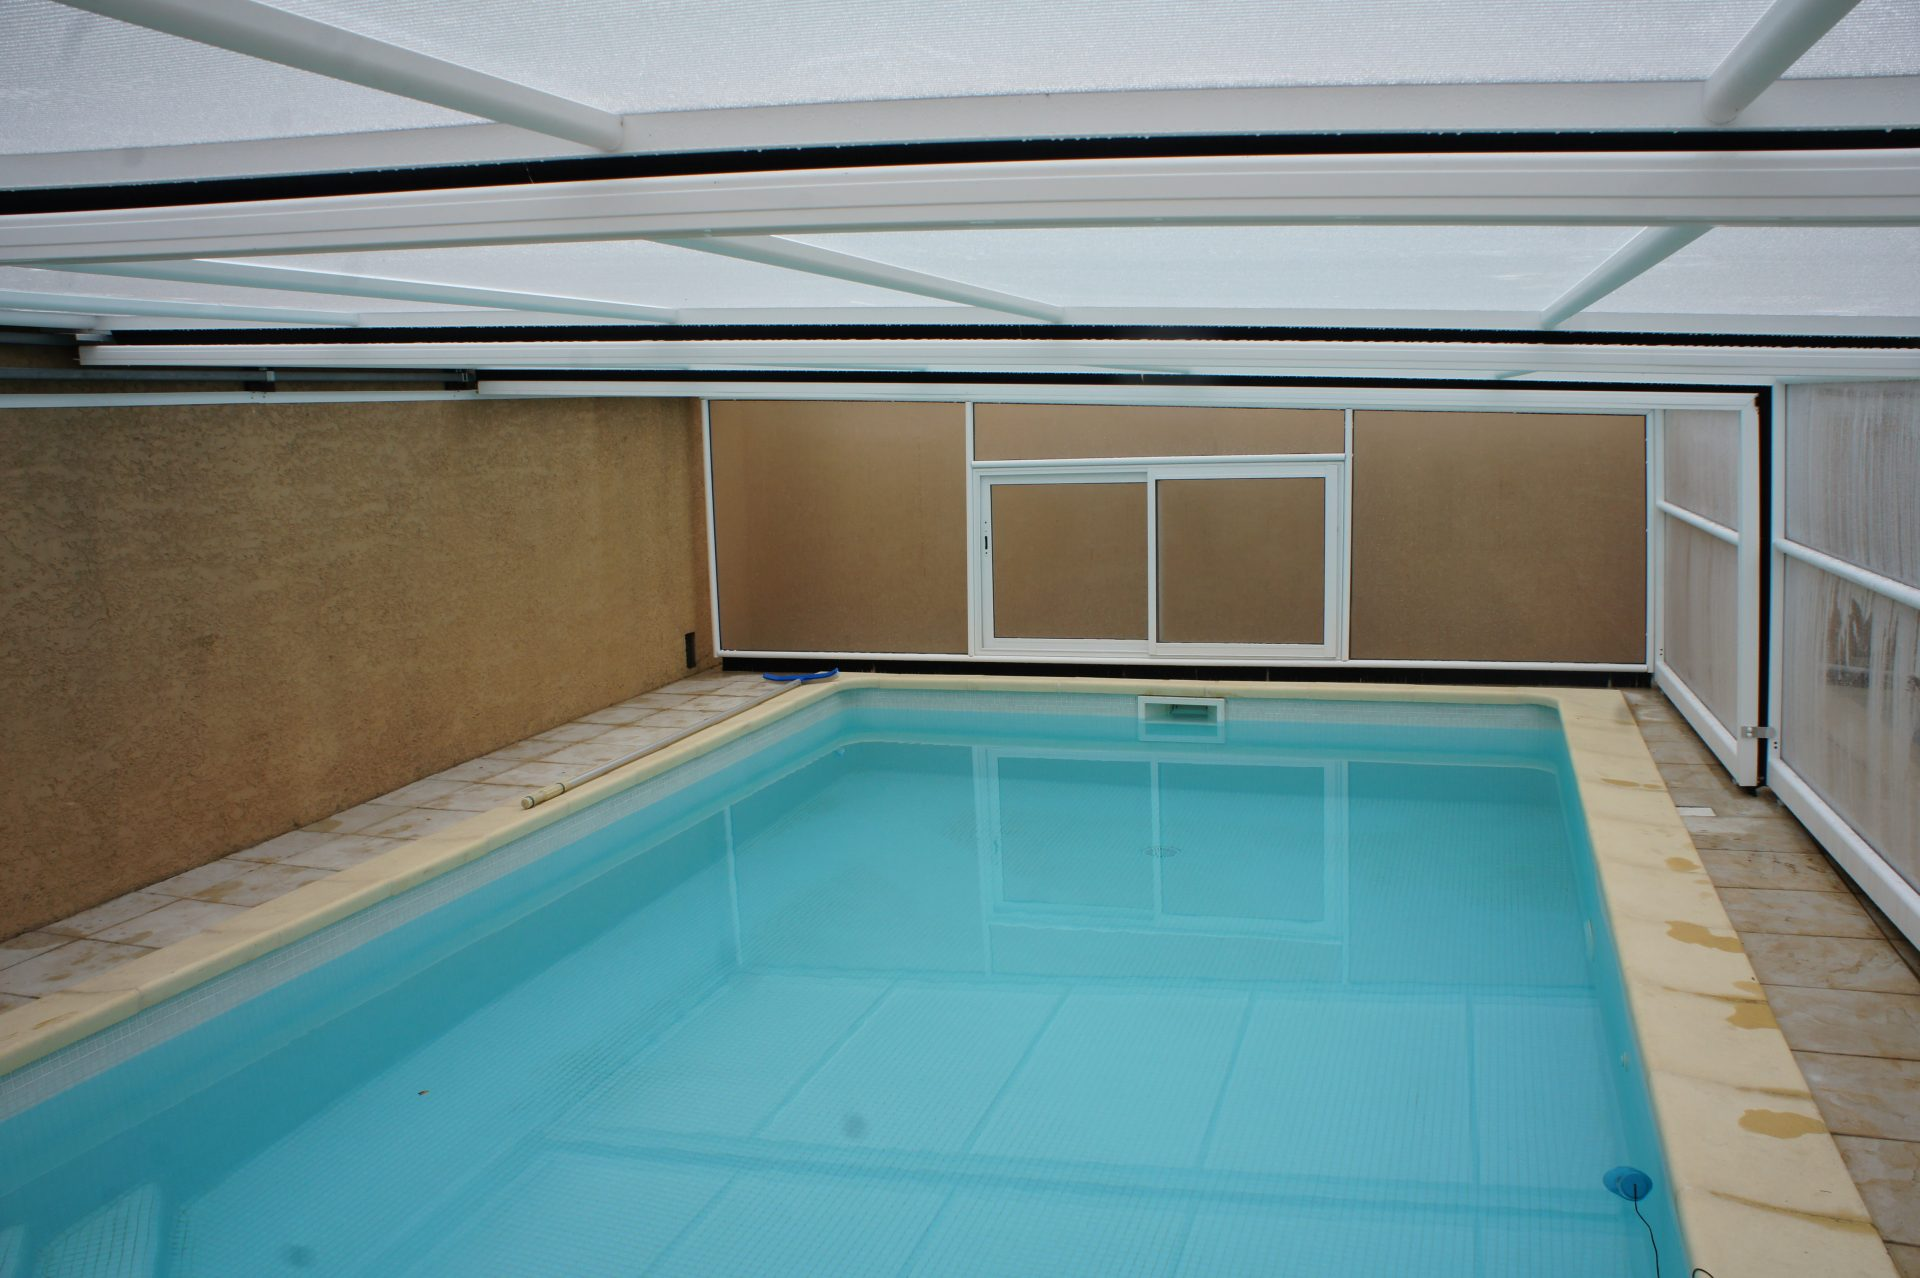 abri piscine mural et coulissant abri piscine dublin. Black Bedroom Furniture Sets. Home Design Ideas